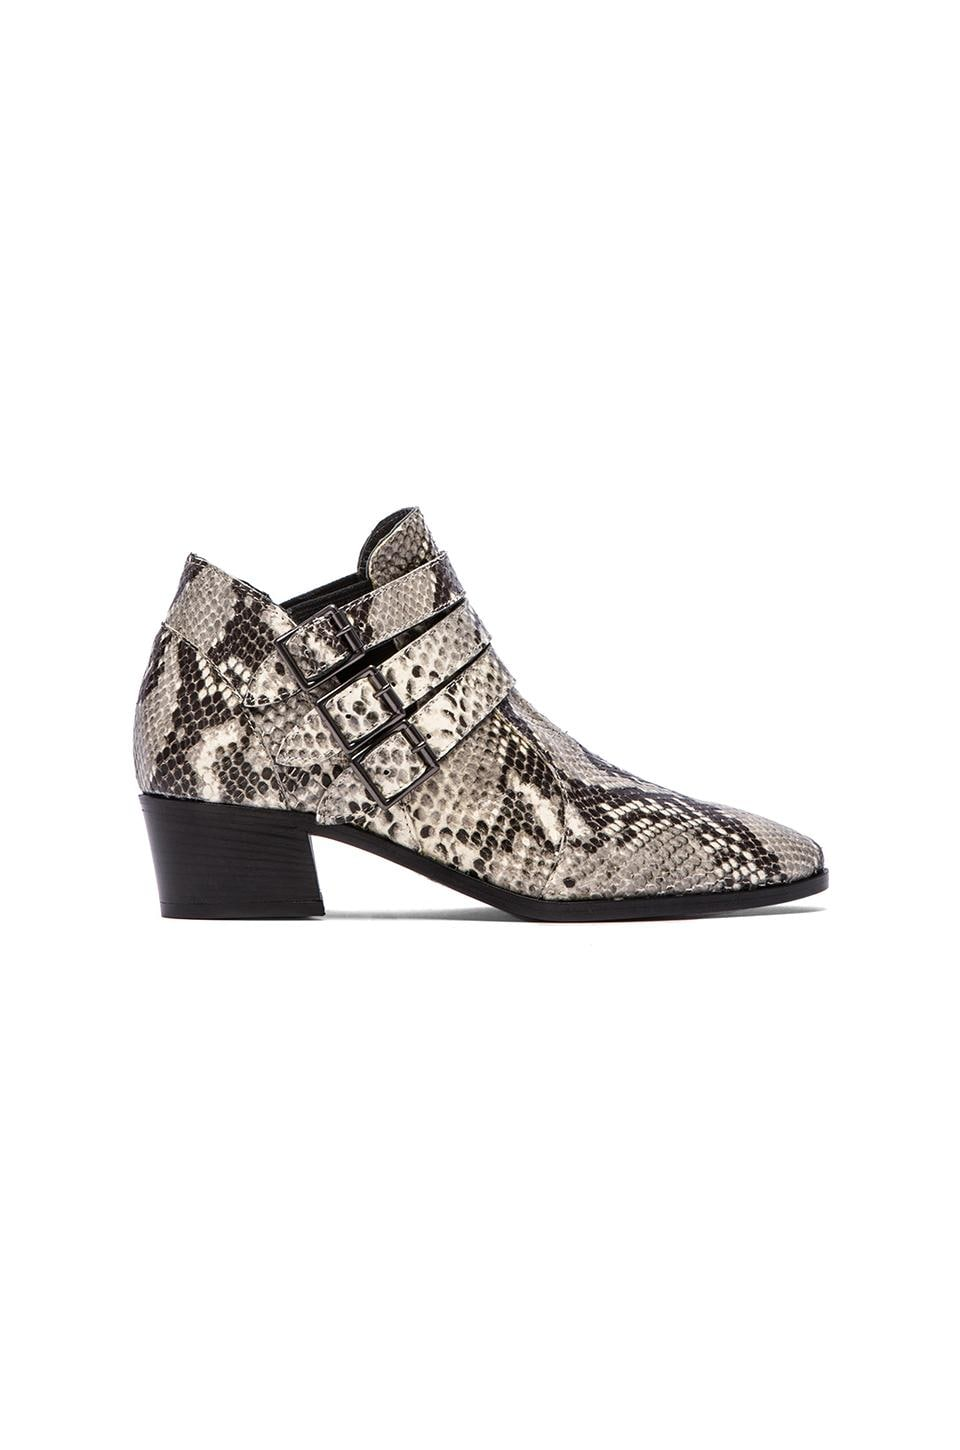 MODERN VICE COLLECTION Chloe Embossed Boot in White Snake